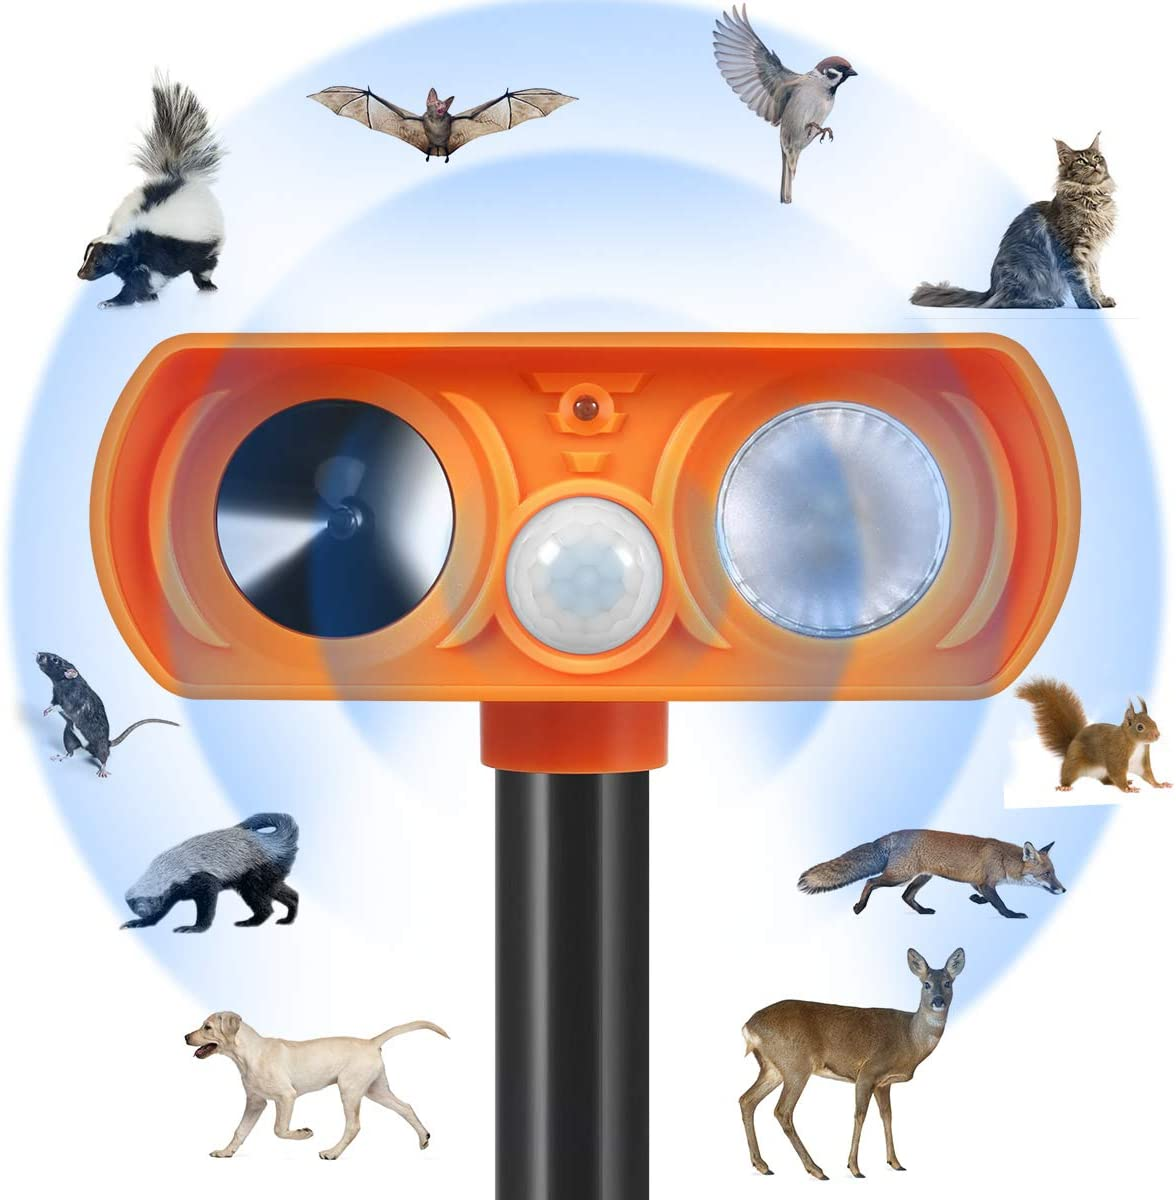 Zomma Dog Repellent, Ultrasonic Animal Repellent with Motion Sensor and Flashing Lights Outdoor Solar Powered Waterproof Farm Garden Yard Repellent, Cats, Dogs, Foxes, Birds,Rod,Chipmunk,Deer